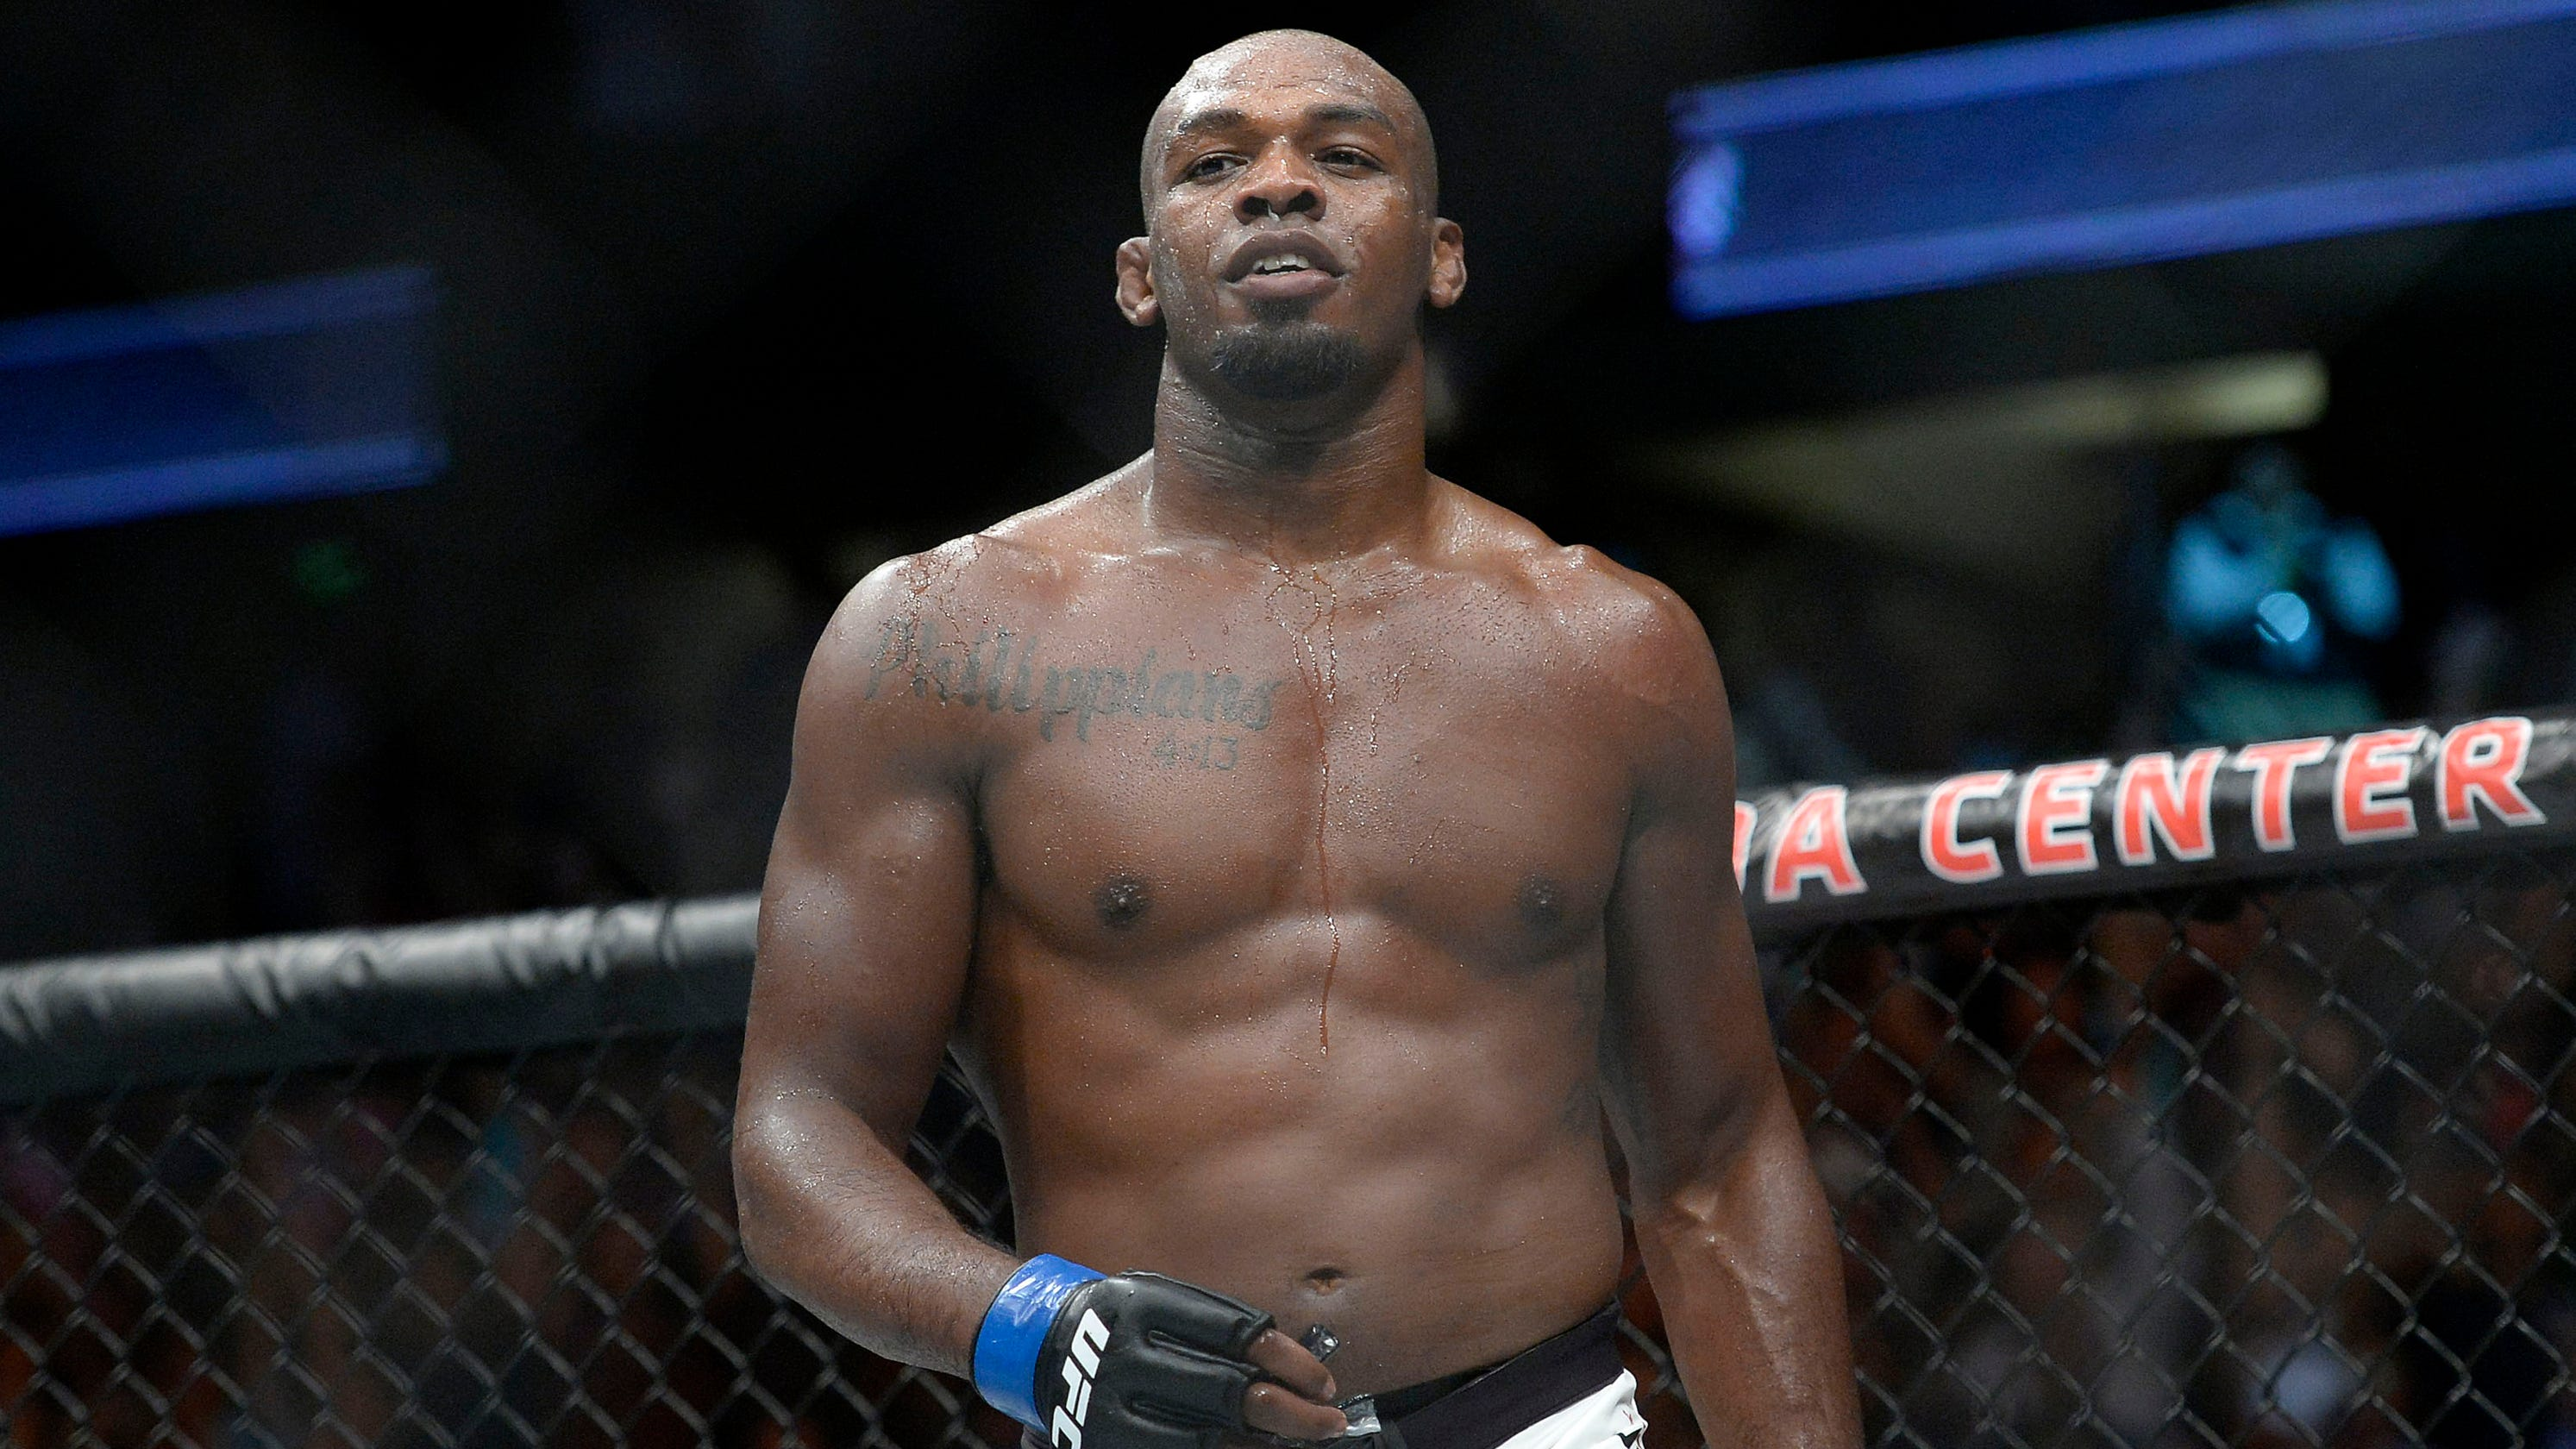 Jon Jones set to defend light heavyweight title vs. Anthony Smith at UFC 235